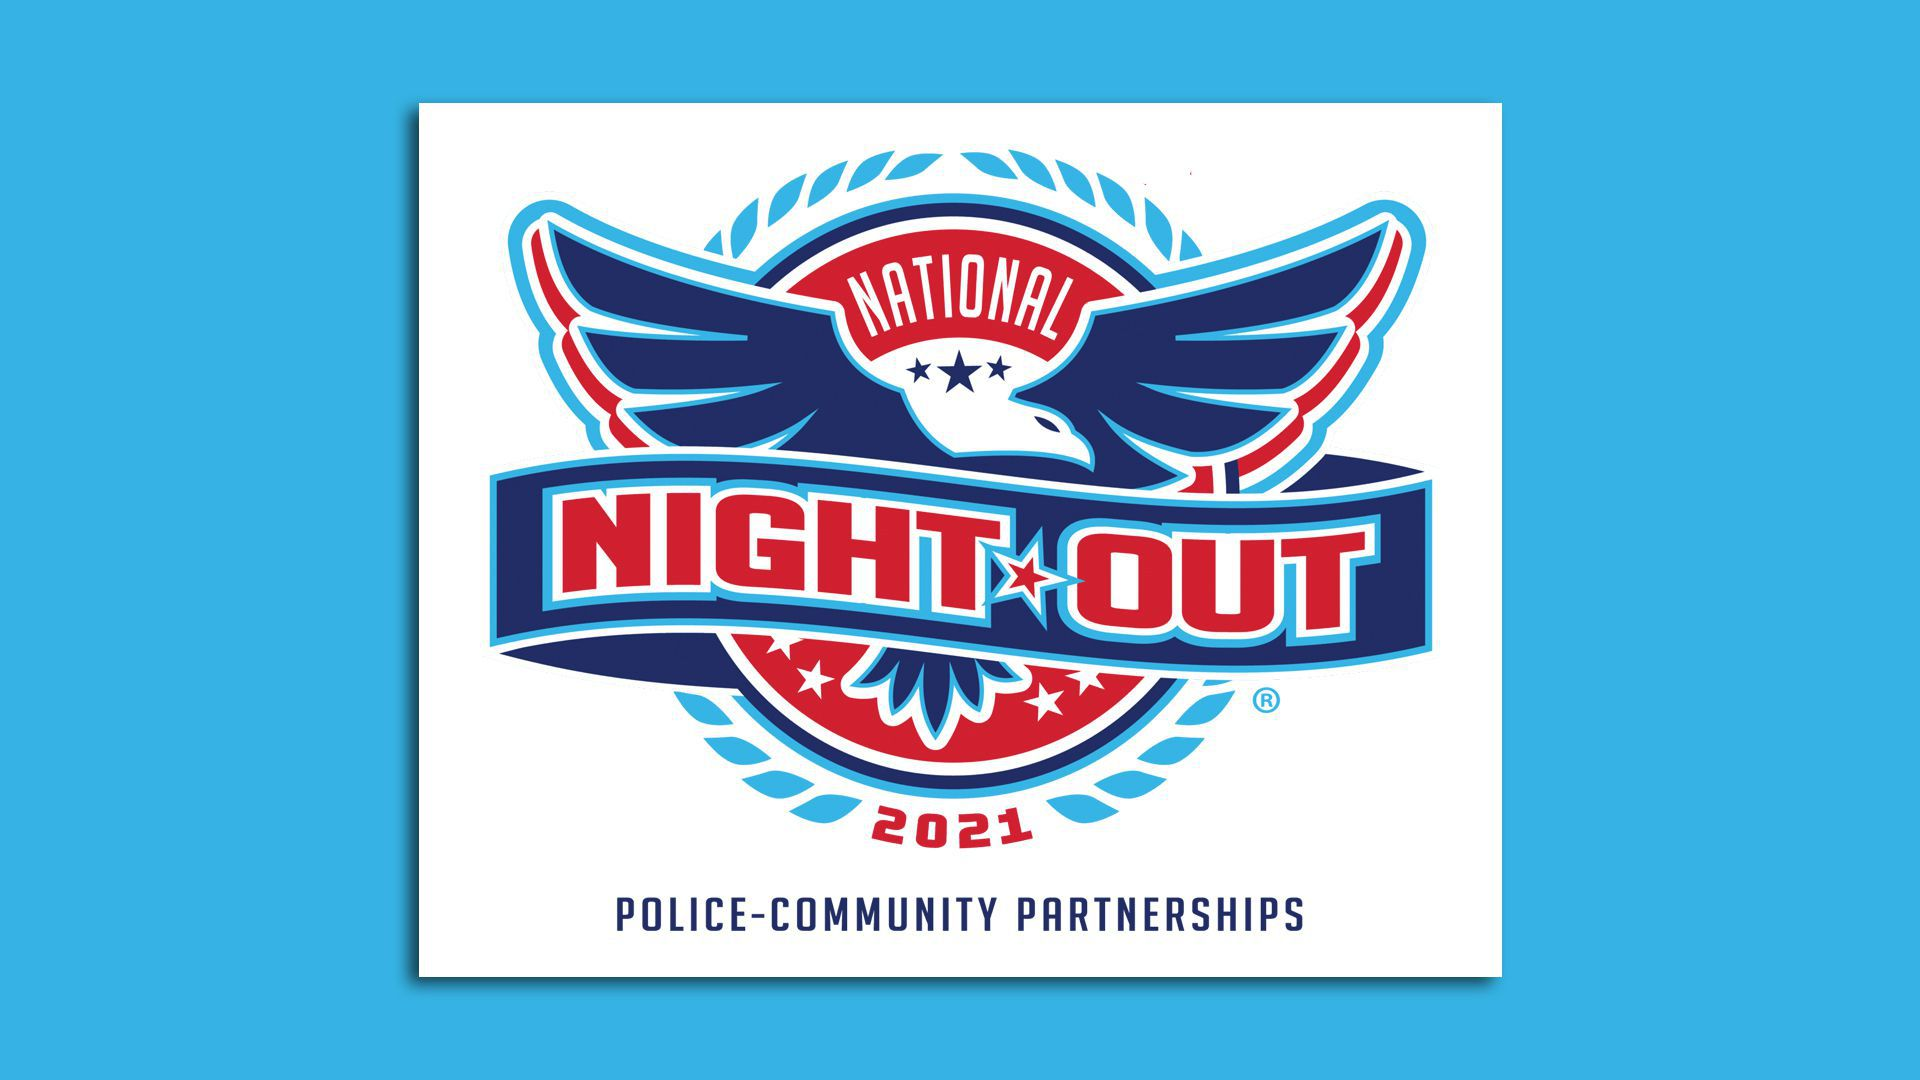 Photo courtesy of National Night Out